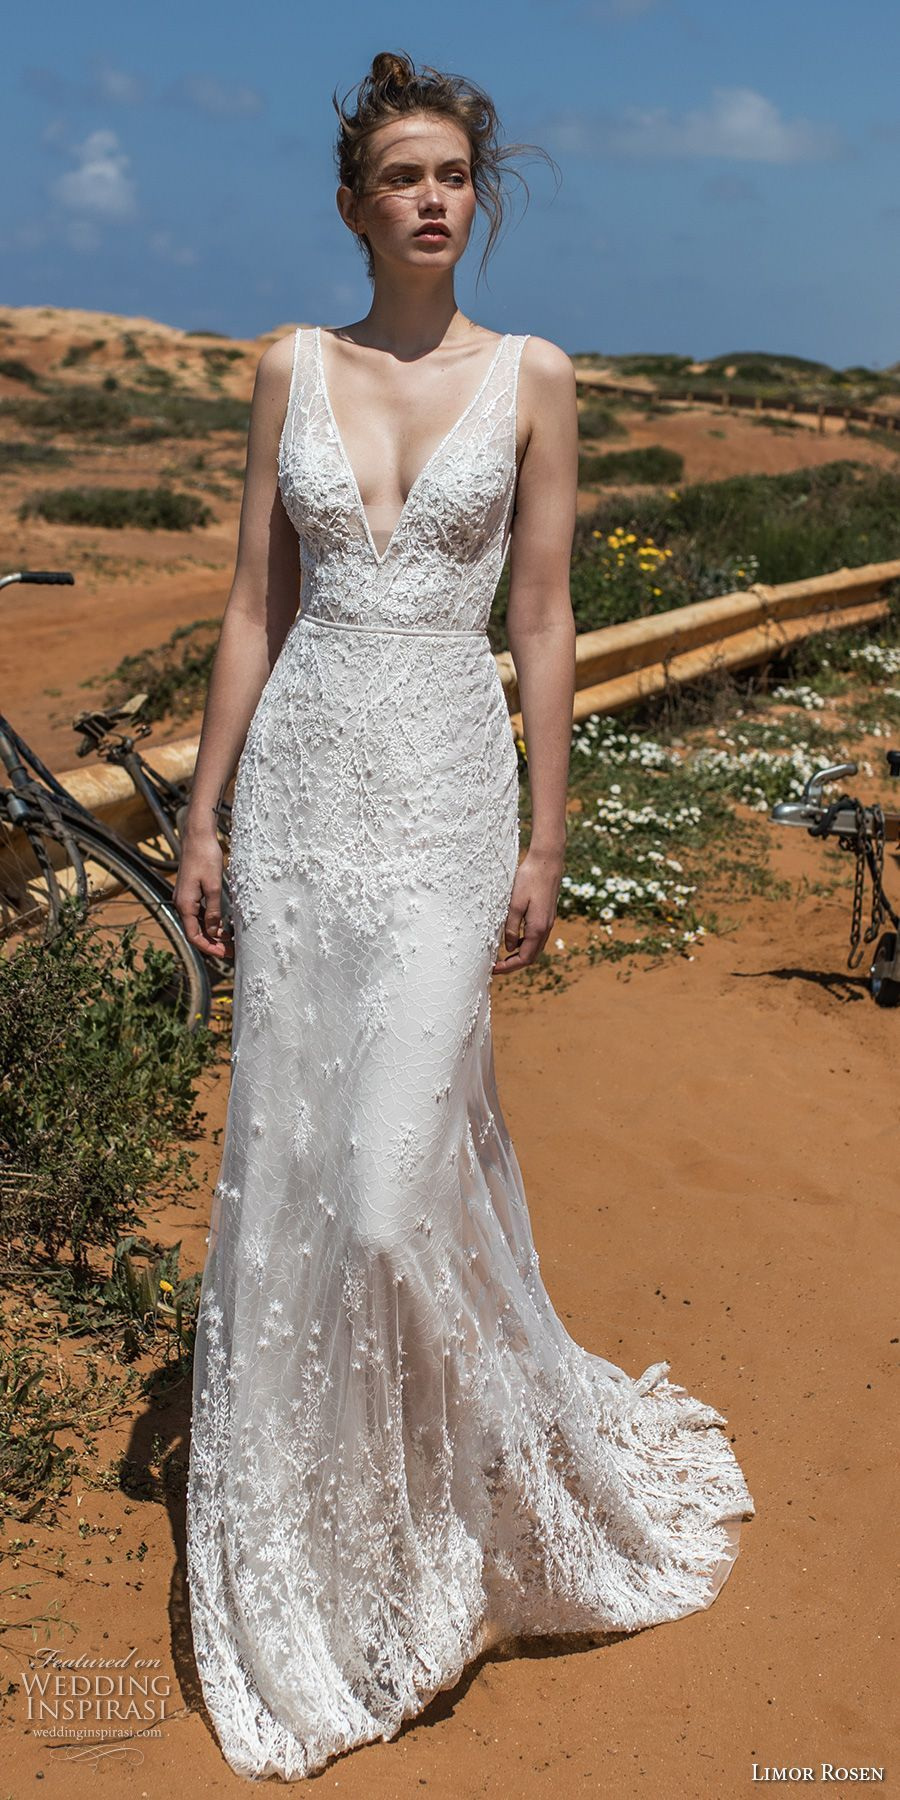 Limor Rosen 2018 Bridal Sleeveless Deep V Neckline Full Embellishment Elegant Sheath Wedding Dress Open Back Chapel Train Cameron Mv